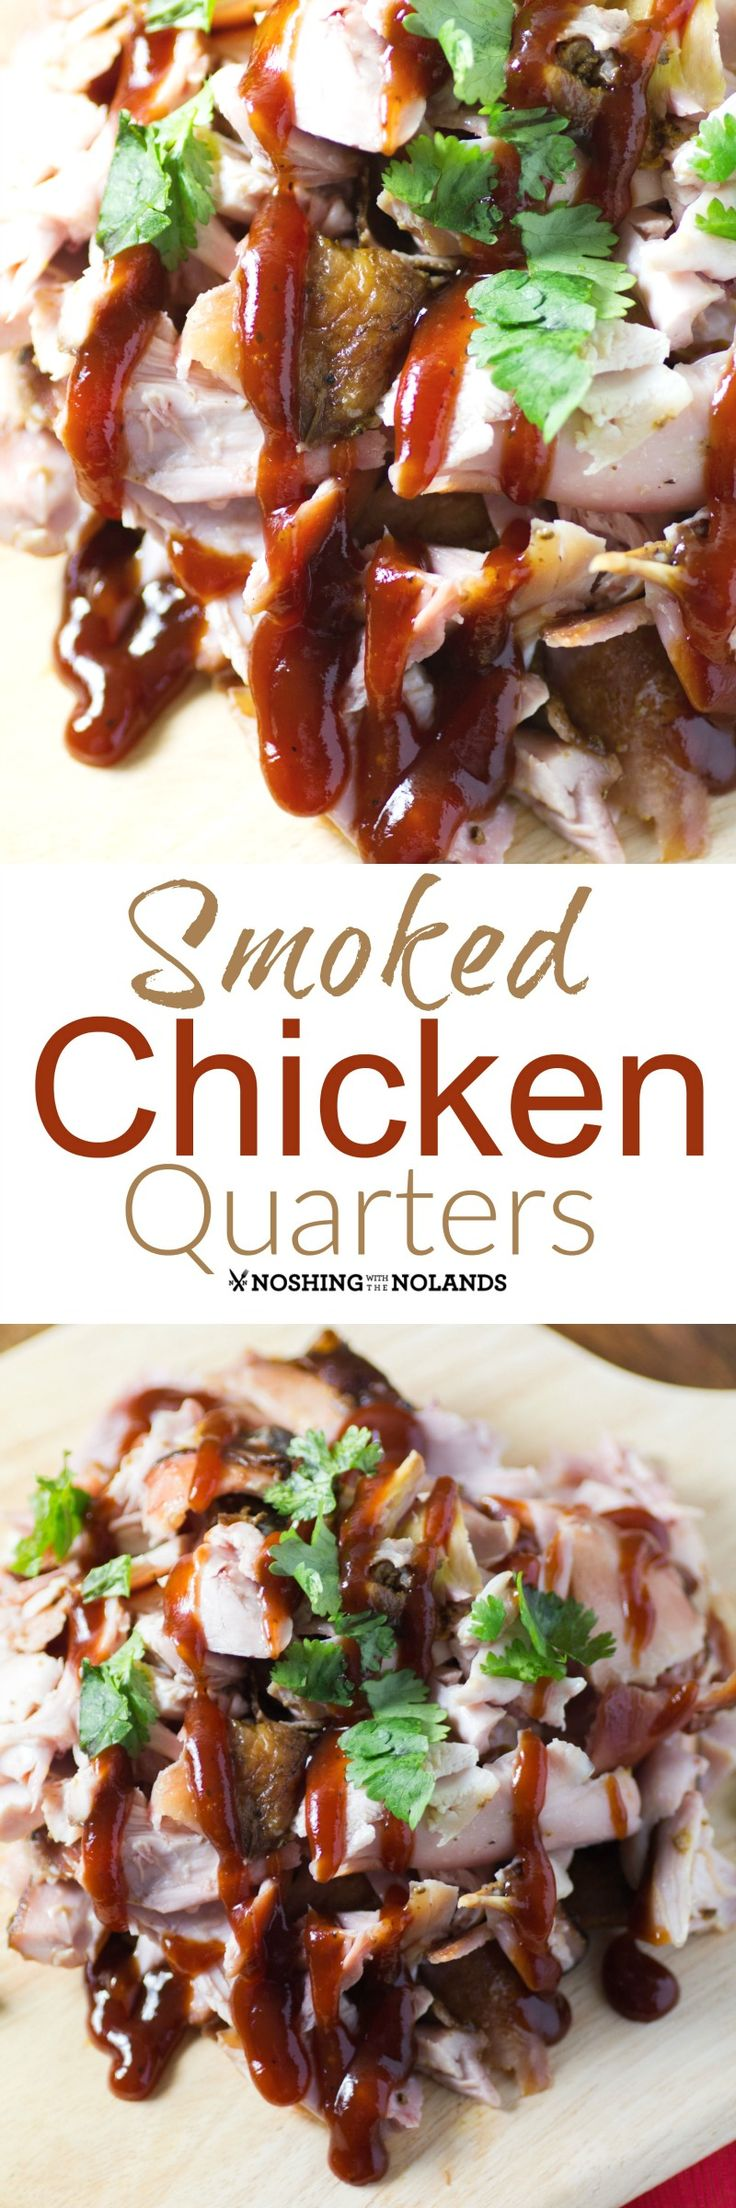 Smoked Chicken Quarters by Noshing With The Nolands is a Southern favorite when pulled and drizzled with BBQ sauce! Plus check out my cookbook review of Smoking Meats by Jeff Phillips!